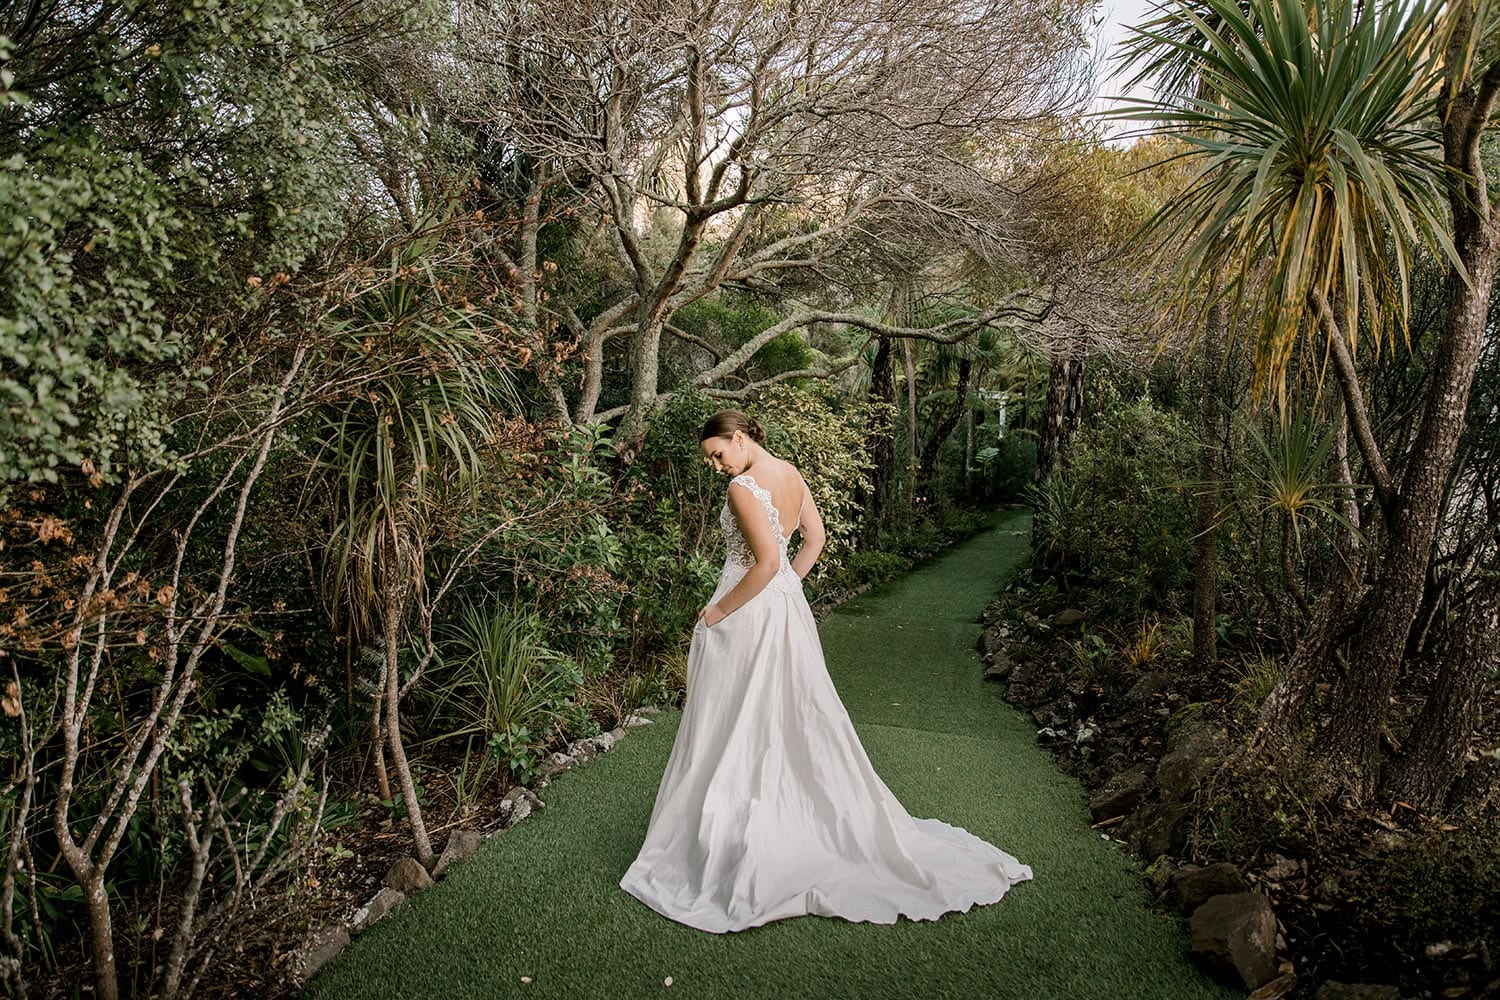 Ashleigh Wedding Dress from Vinka Design. Wedding dress with semi-sheer, richly embroidered fitted bodice on a nude base adorned with guipure lace. Dramatic silk dupion full skirt with side pockets. Dress from back with hands in pockets, photographed at Tui Hills by Emmaline Photography.